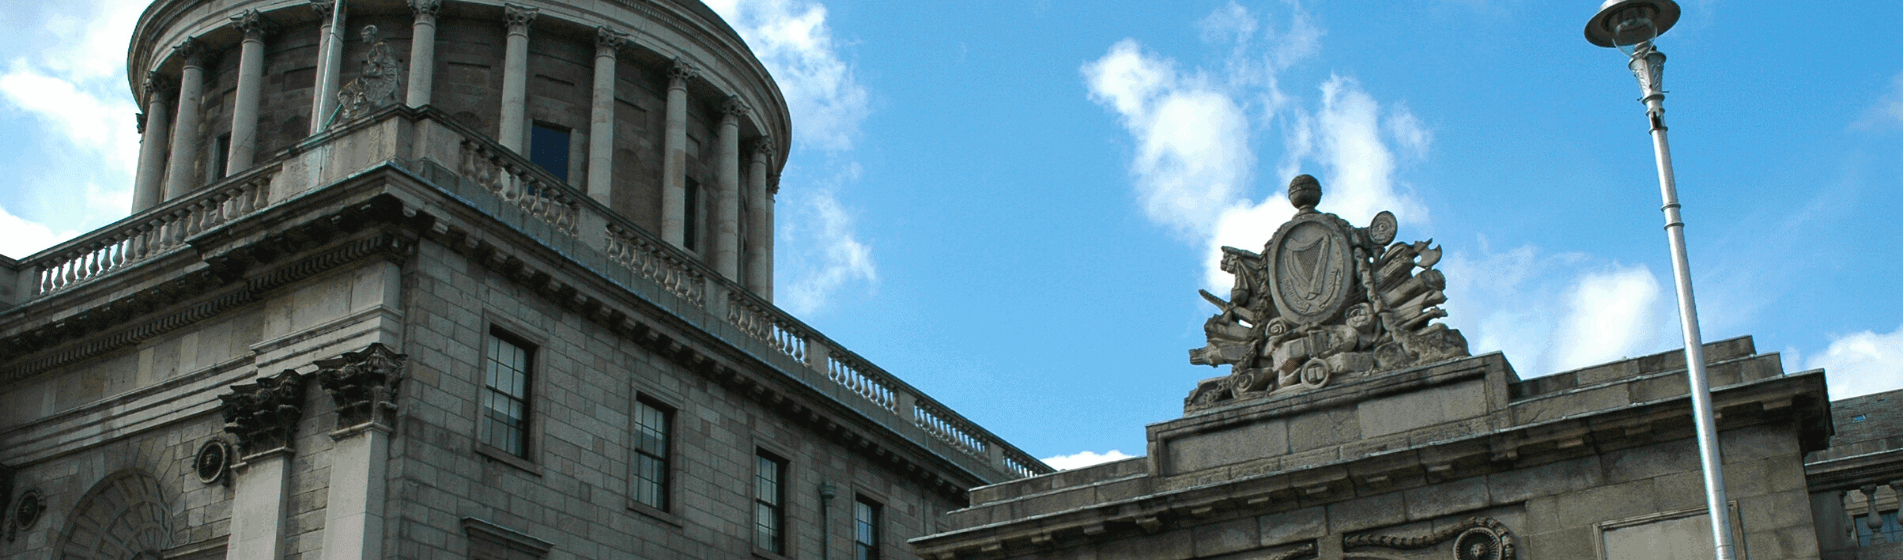 Offshore banking options shrink as another Isle of Man bank closes